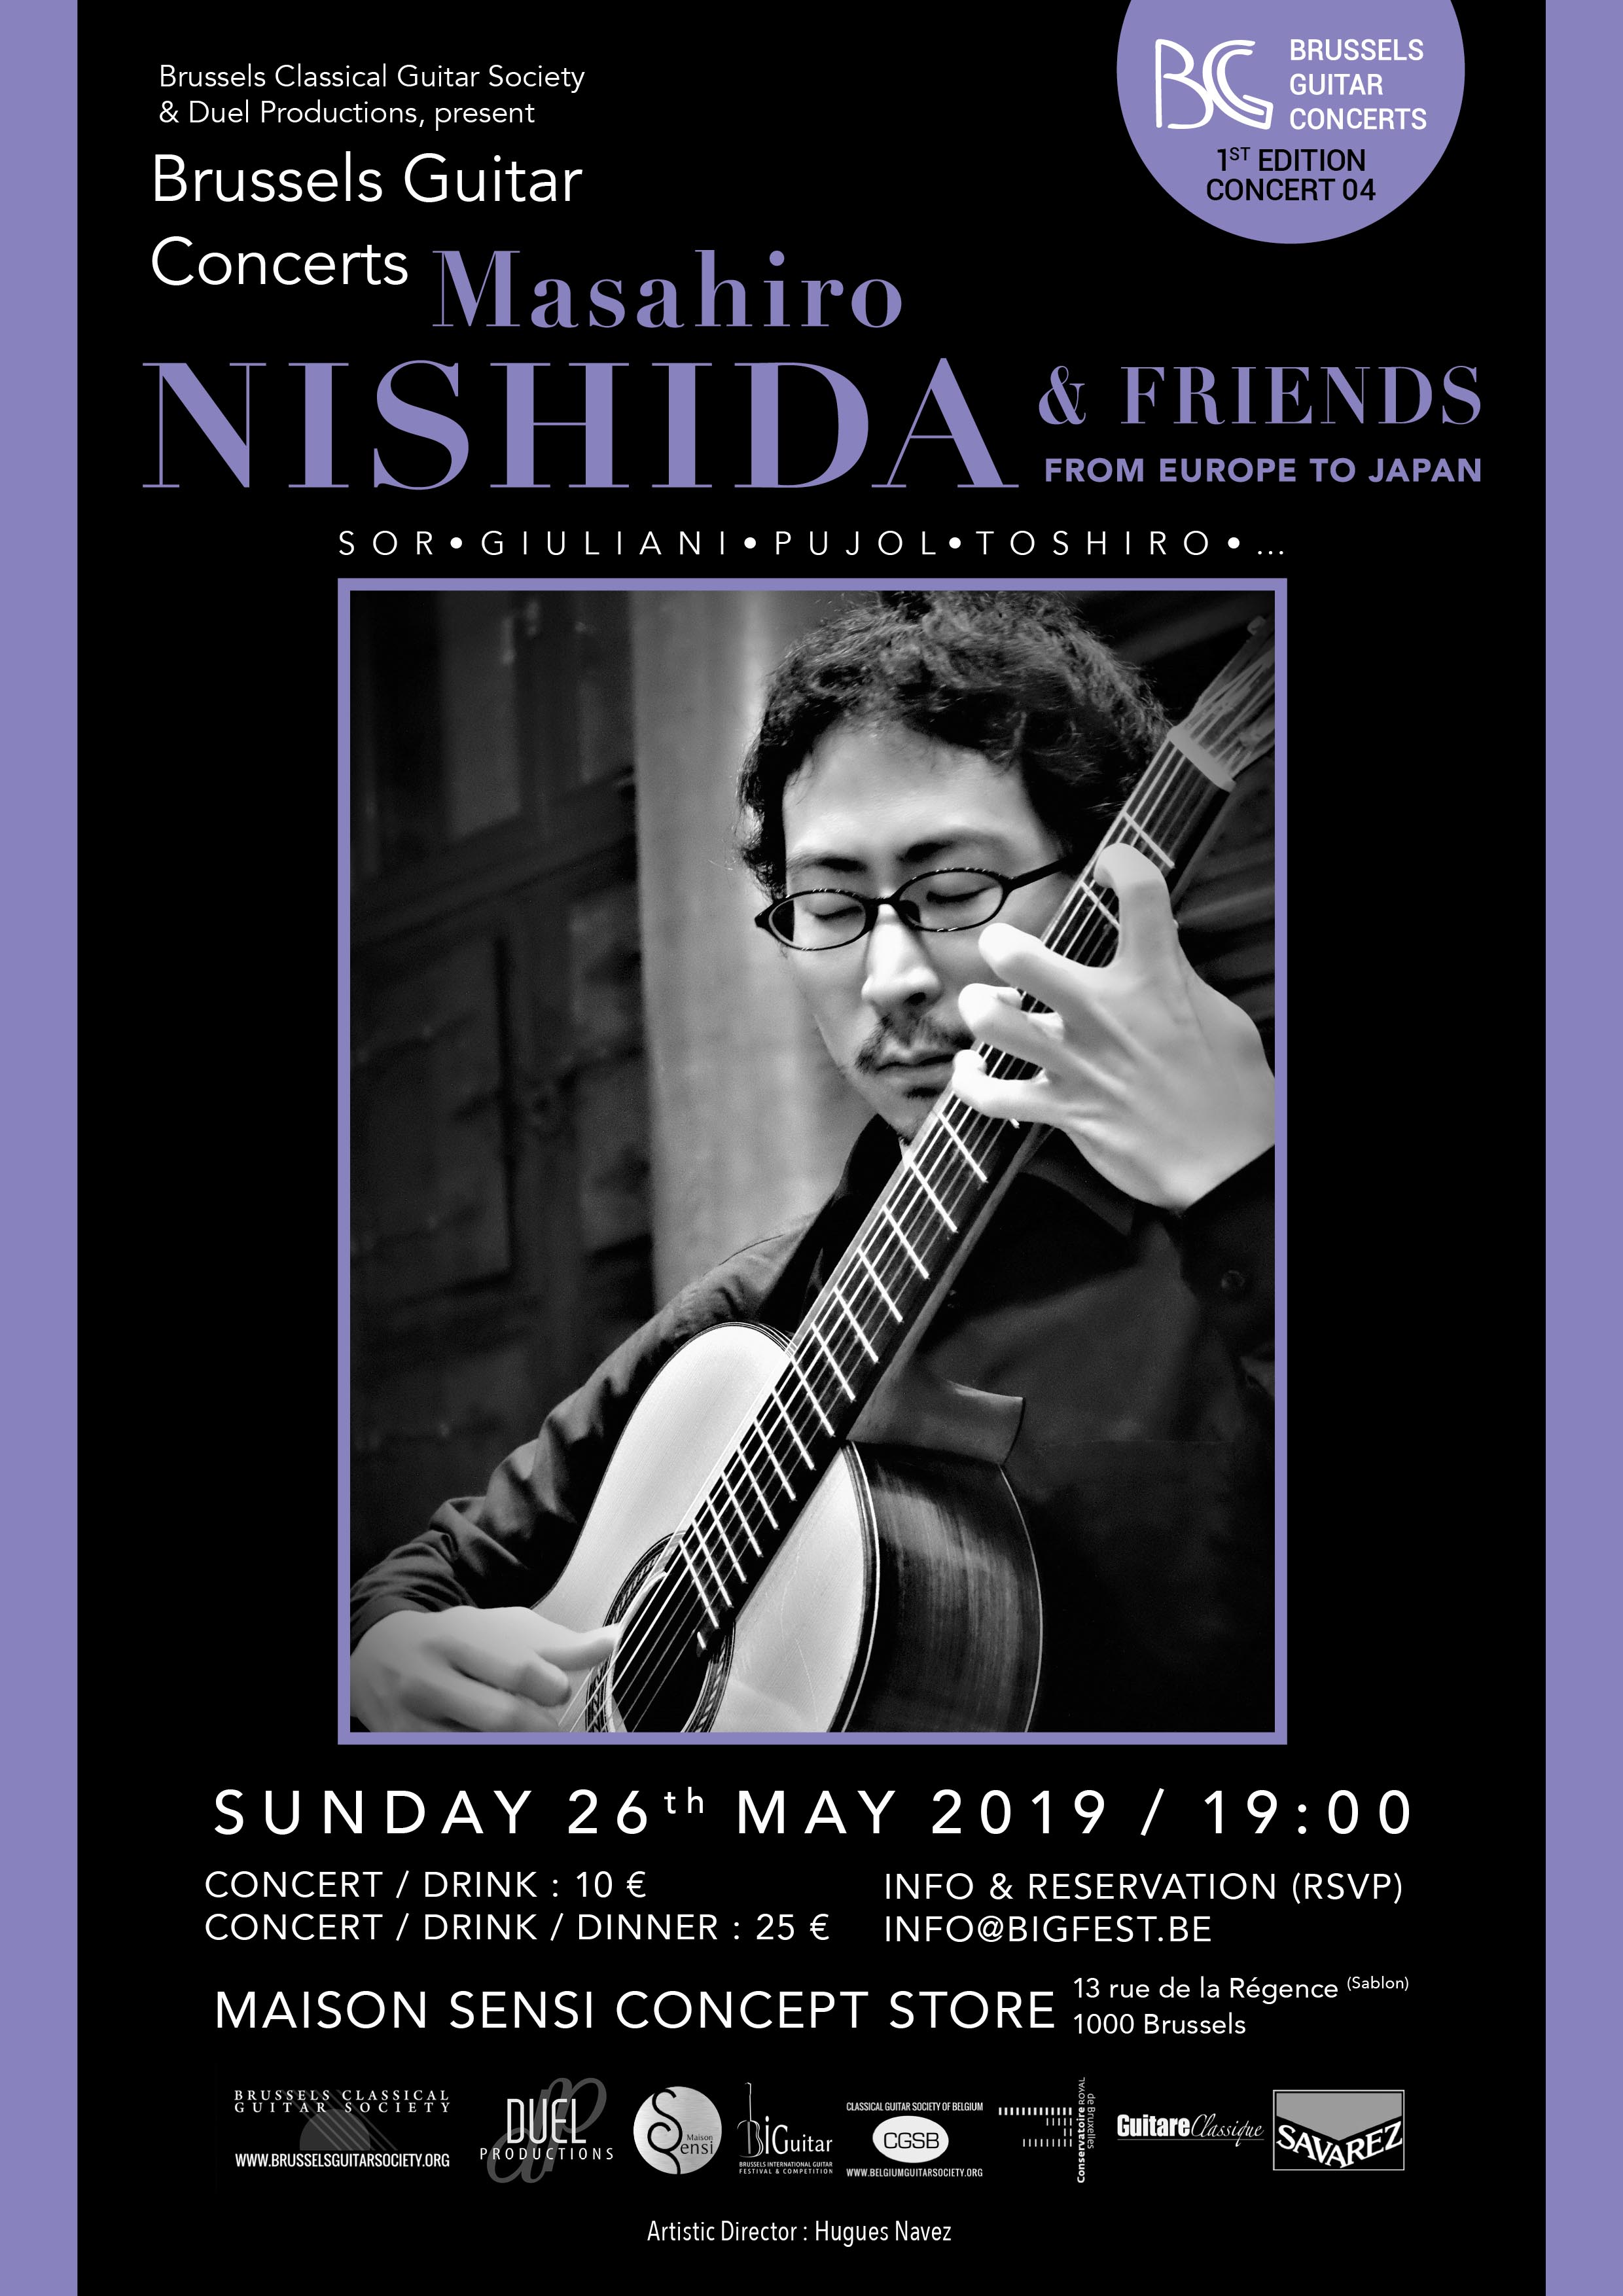 Masahiro Nishida - « From Europe to Japan » - Brussels Guitar Concerts